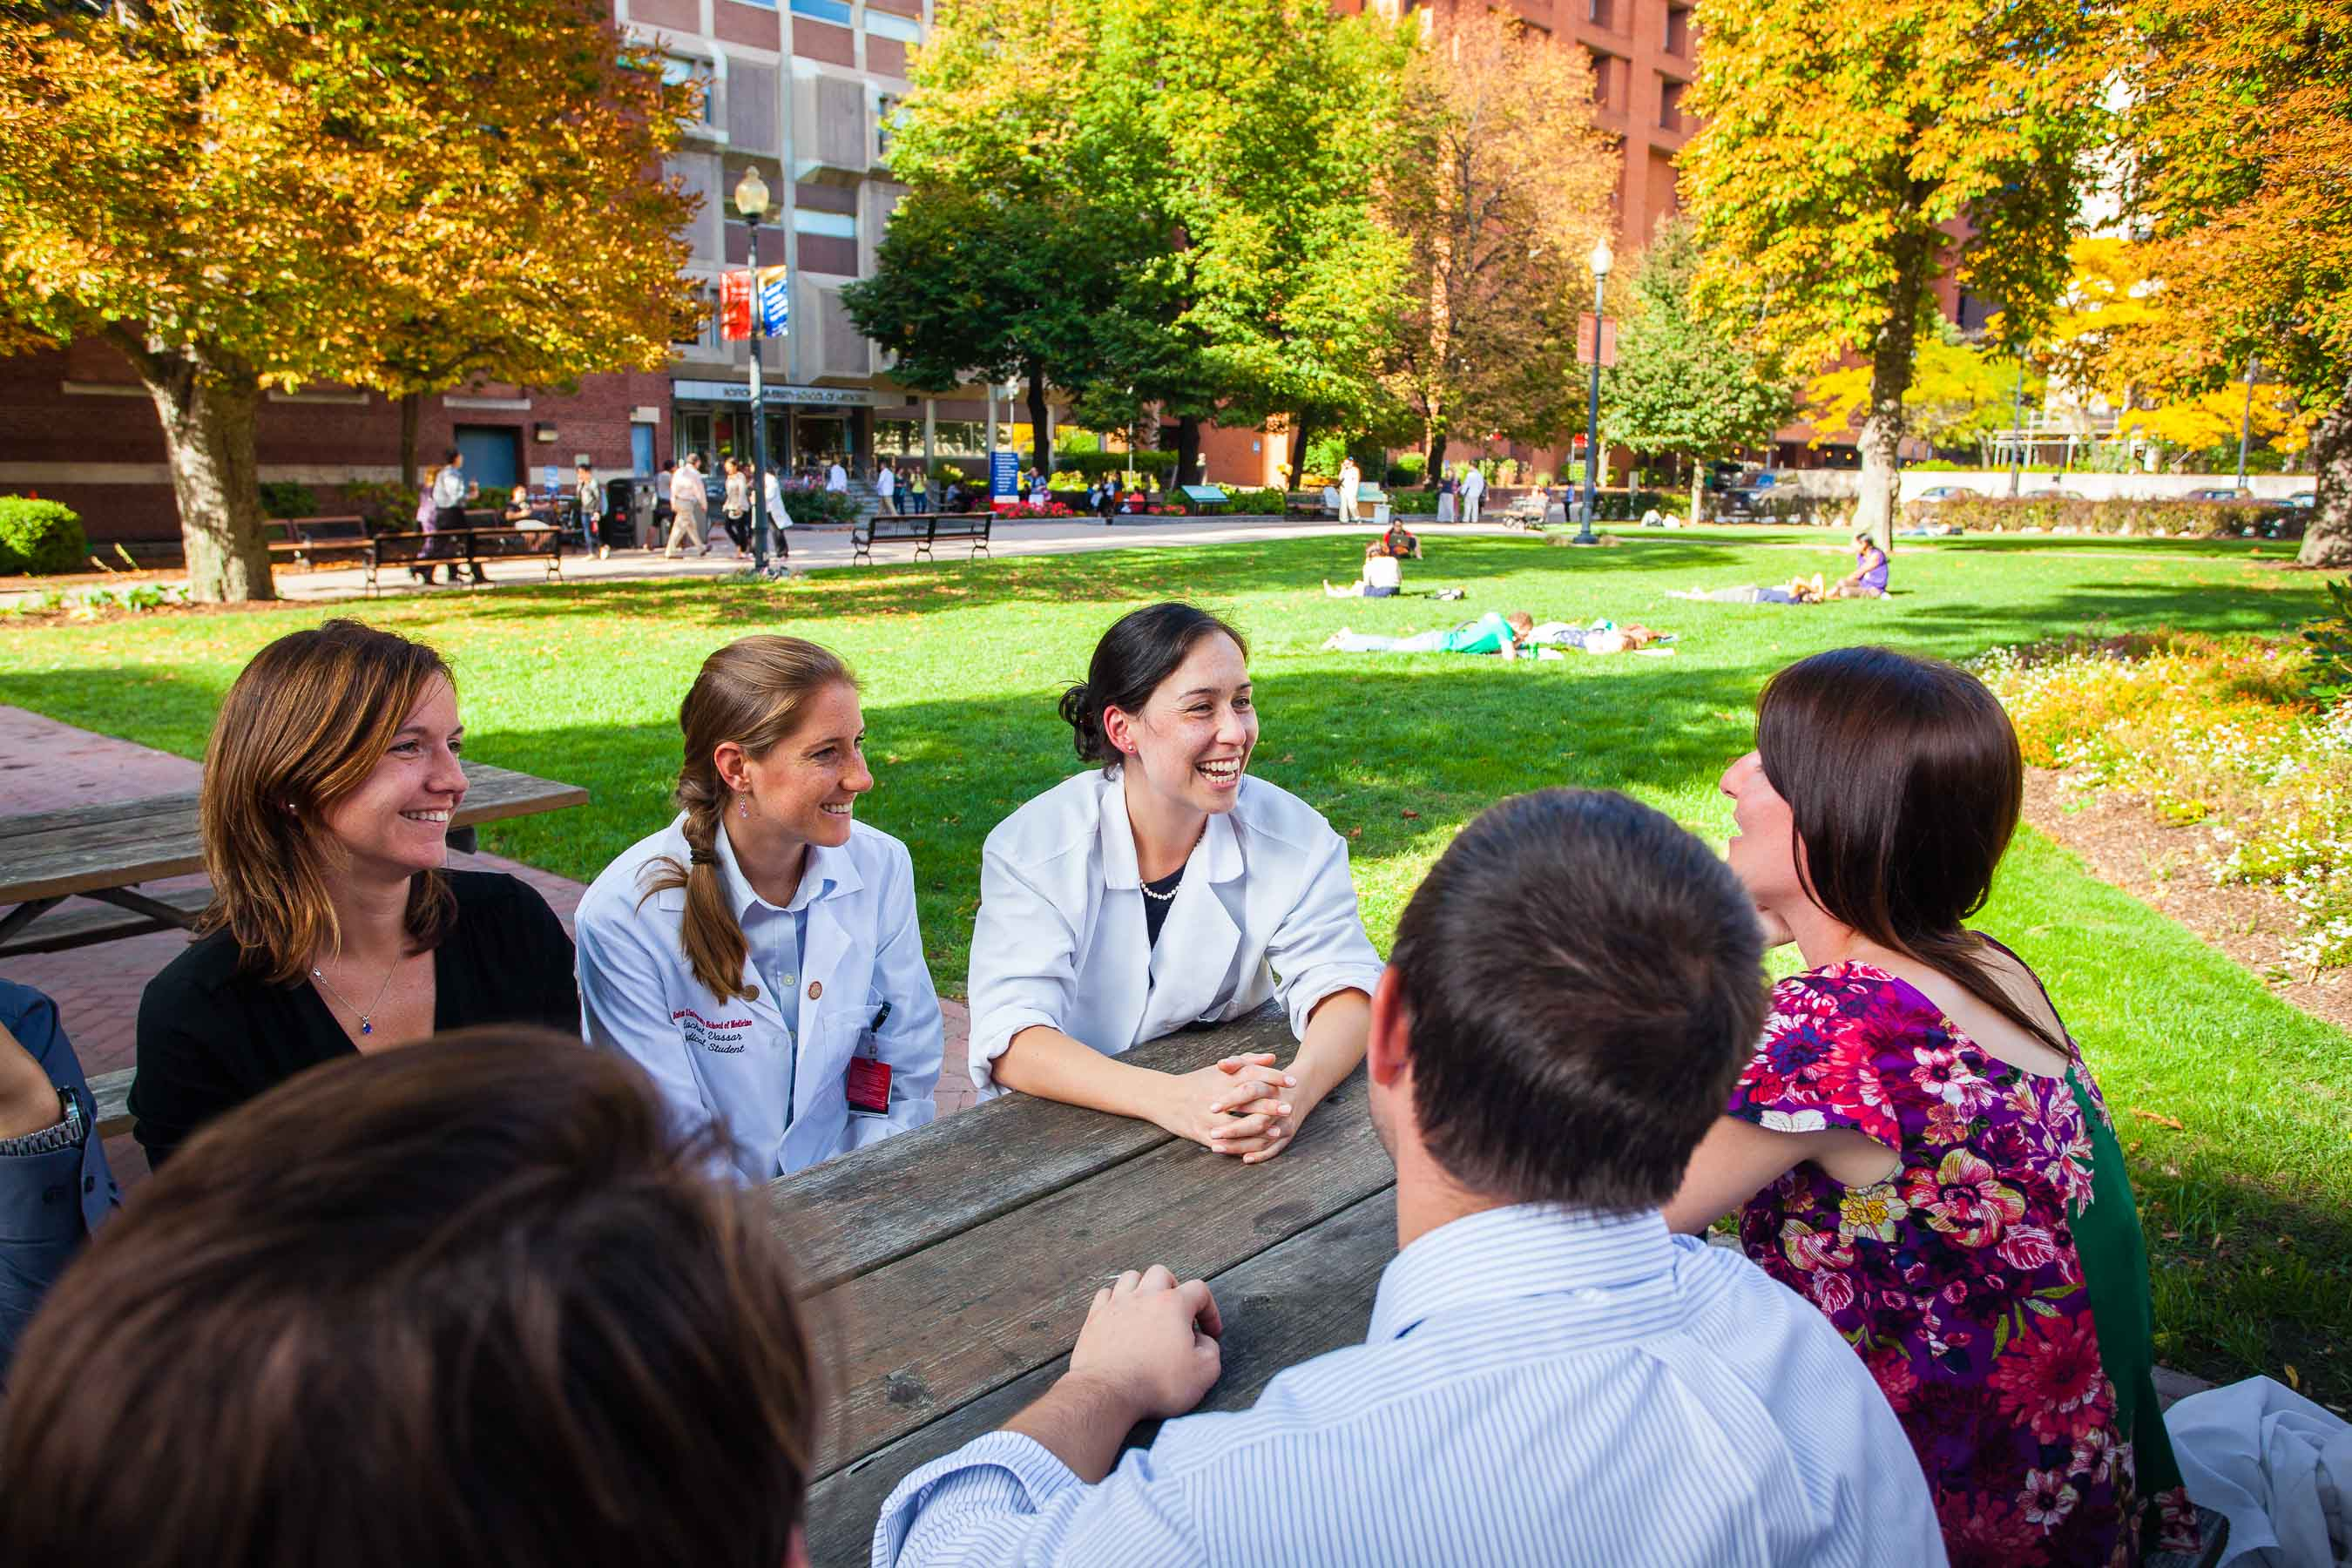 Medical school students having a discussion outside